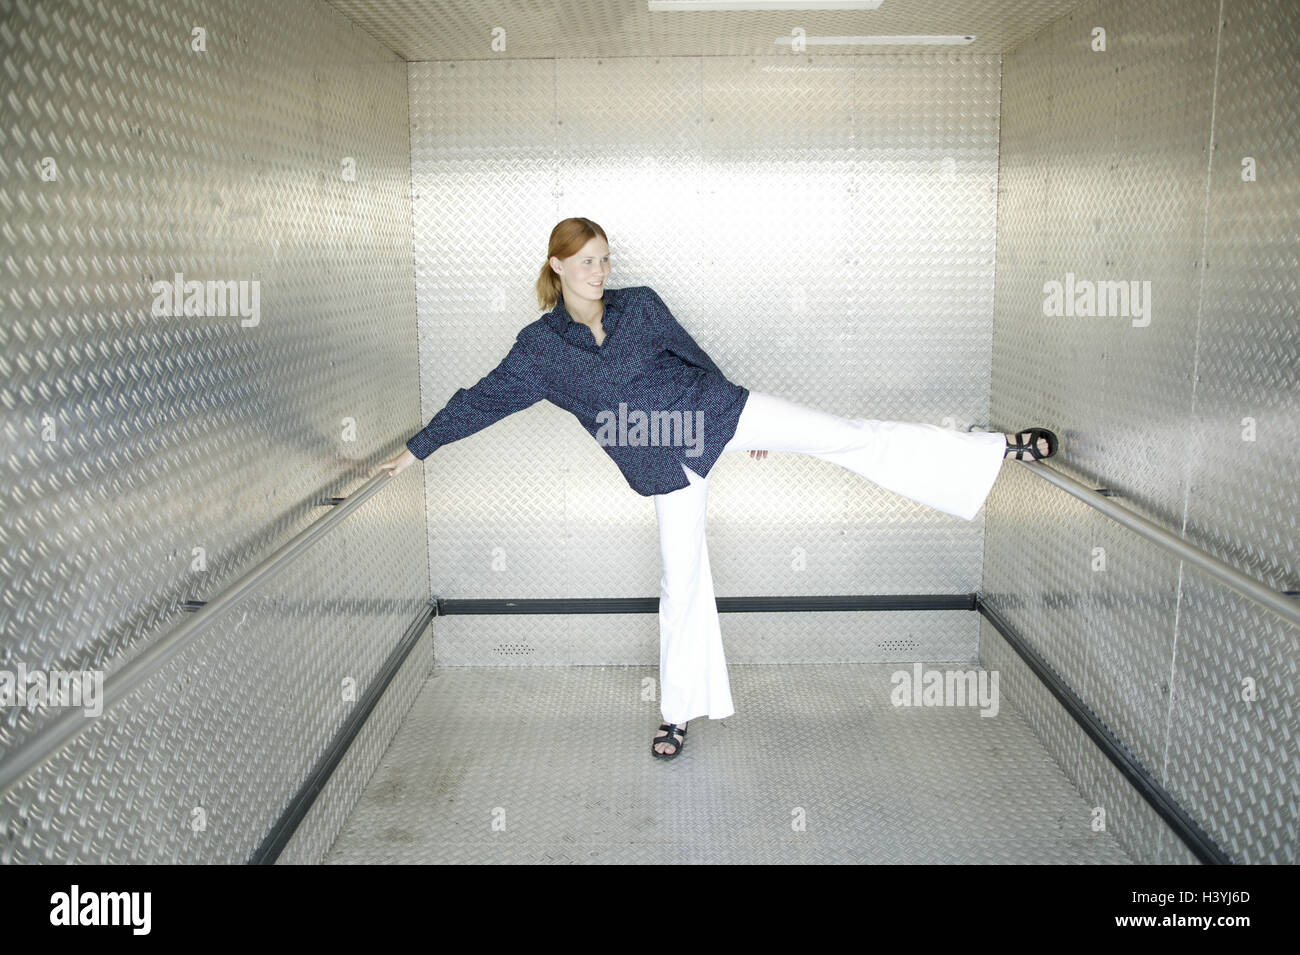 Lift, woman, young, motion, stretch, 15 stick - 20 years, young persons, trainees, trainee, lift, lift, handrail, - Stock Image